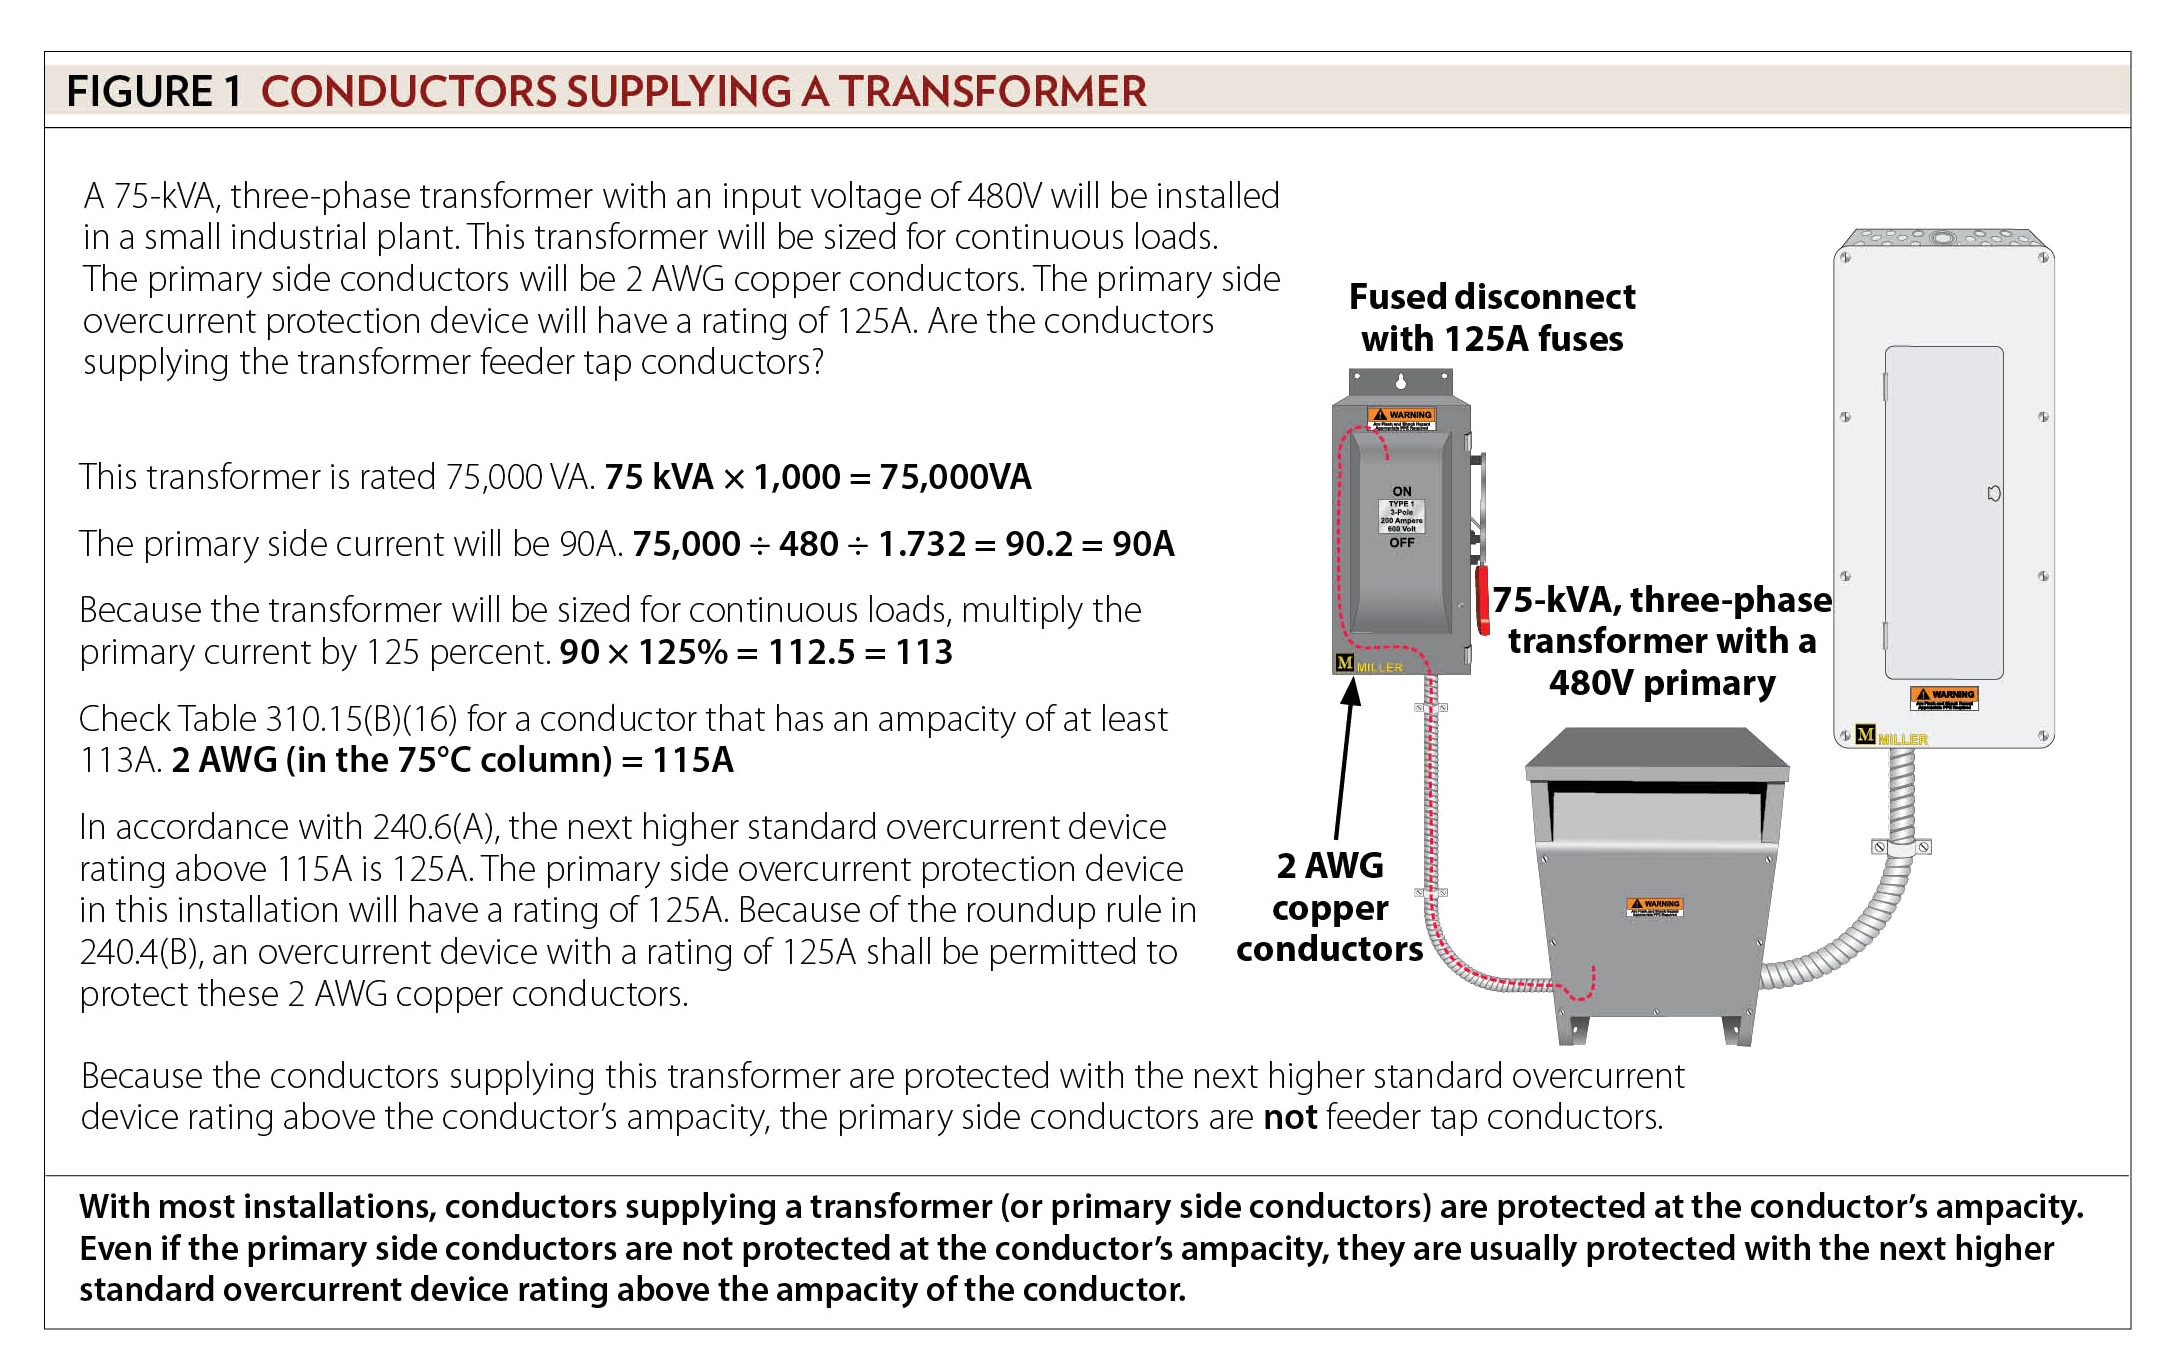 45 kva transformer wiring diagram Download-75 kva transformer wiring diagram Collection 75 Kva Transformer Wiring Diagram Gooddy Org With Webtor 12-t